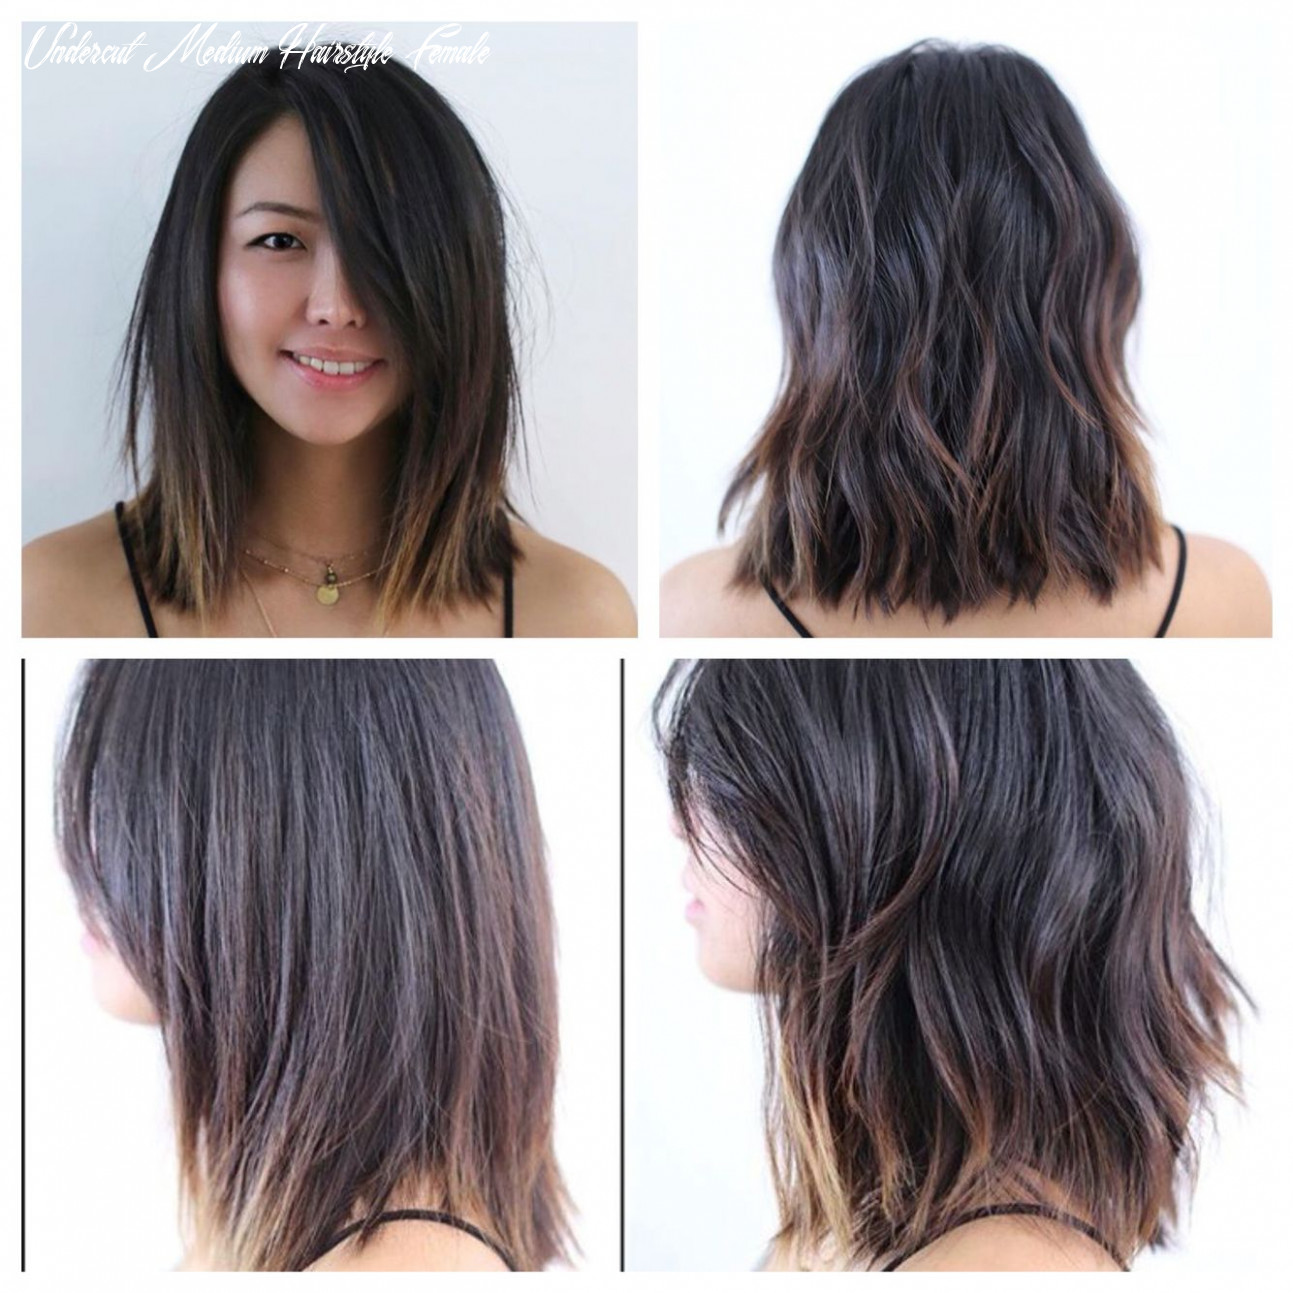 Mid length hair blunt soft undercut soft waves lived in hair